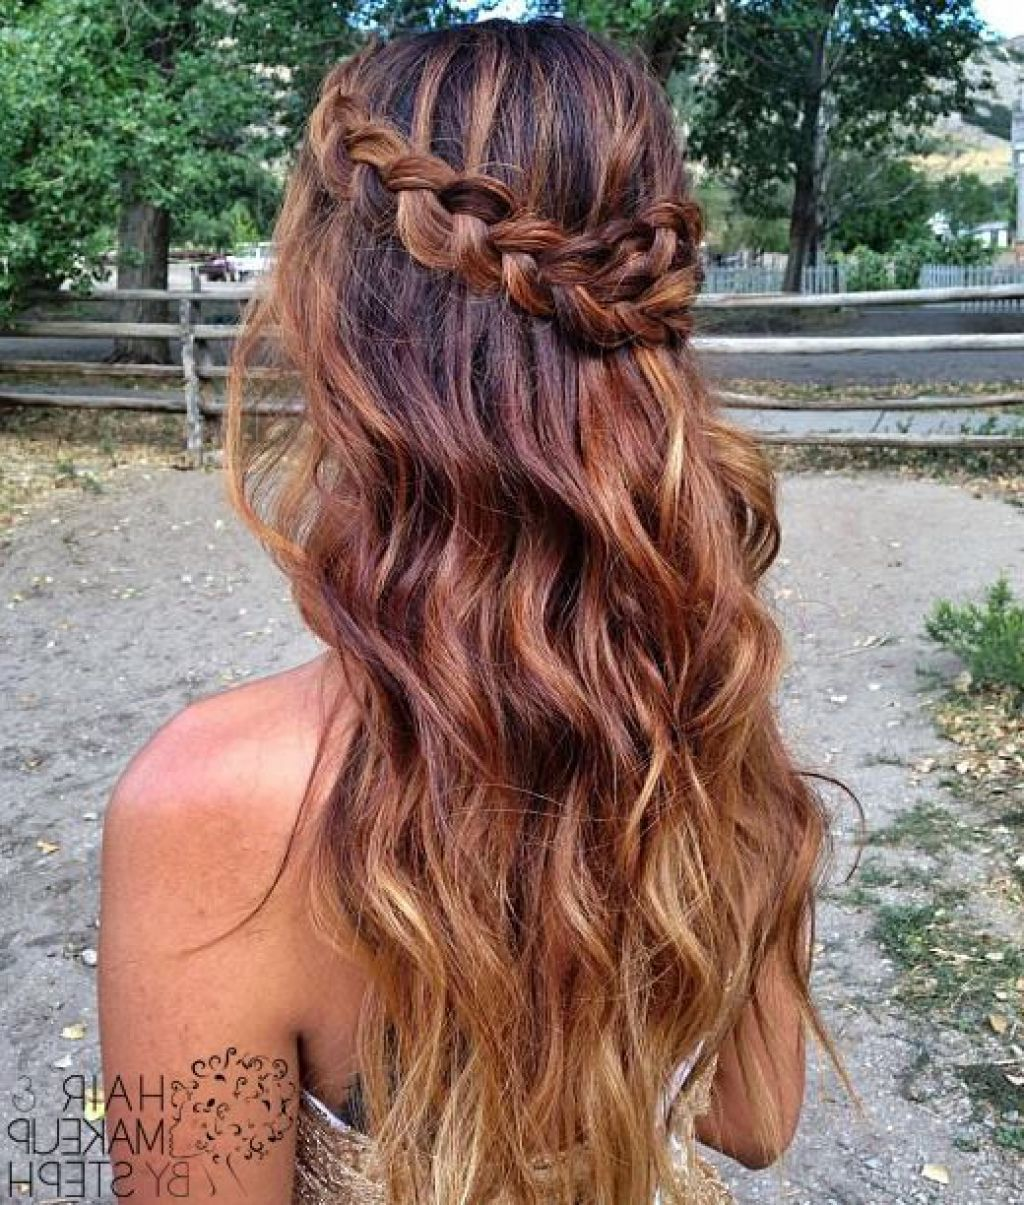 half up half down prom hairstyles hairstyle | hair